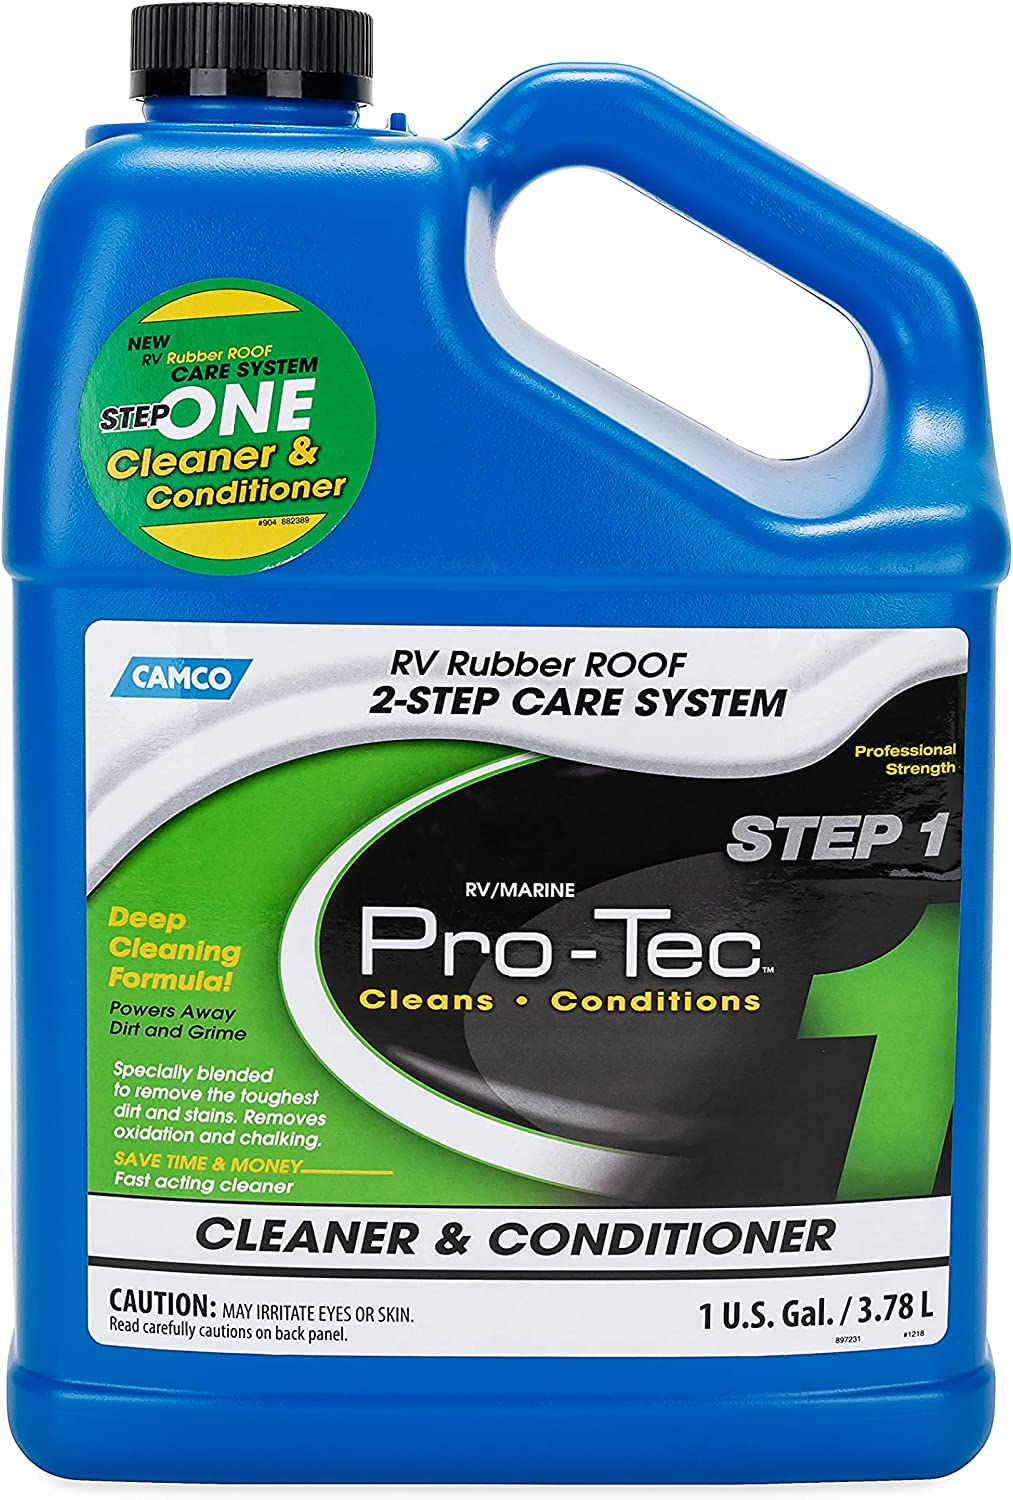 35% OFF Camco Pro-Tec Rubber Roof Cleaner shipfree Cleansing - Rids Formula Deep